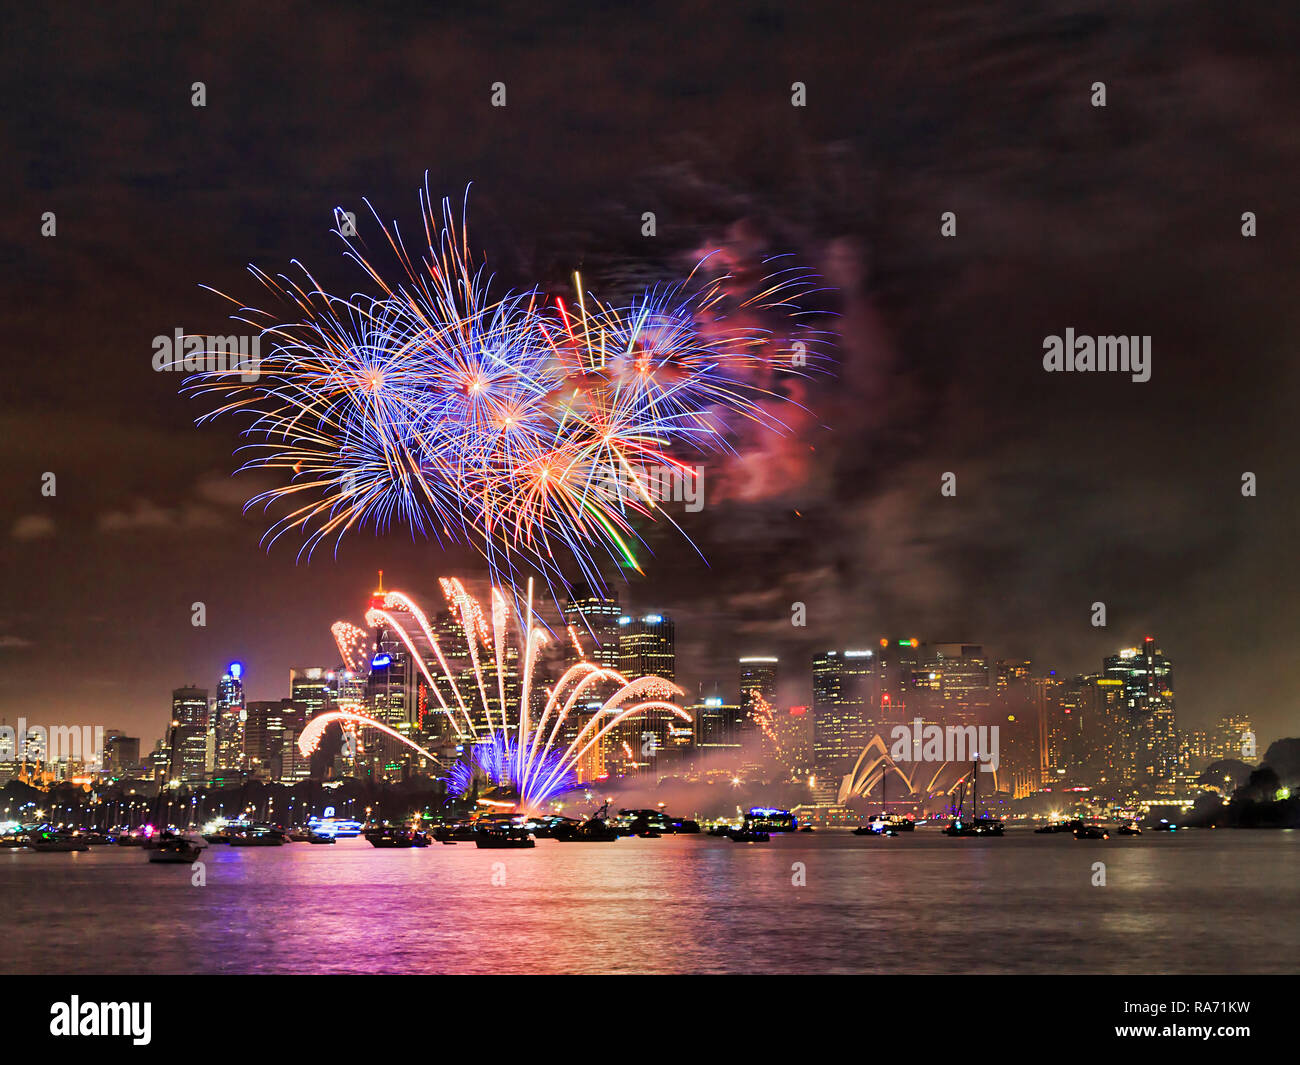 Celebration of New year with fireworks light show in Sydney city CBD with bright flashing balls over high-rise towers reflecting in still blurred wate - Stock Image